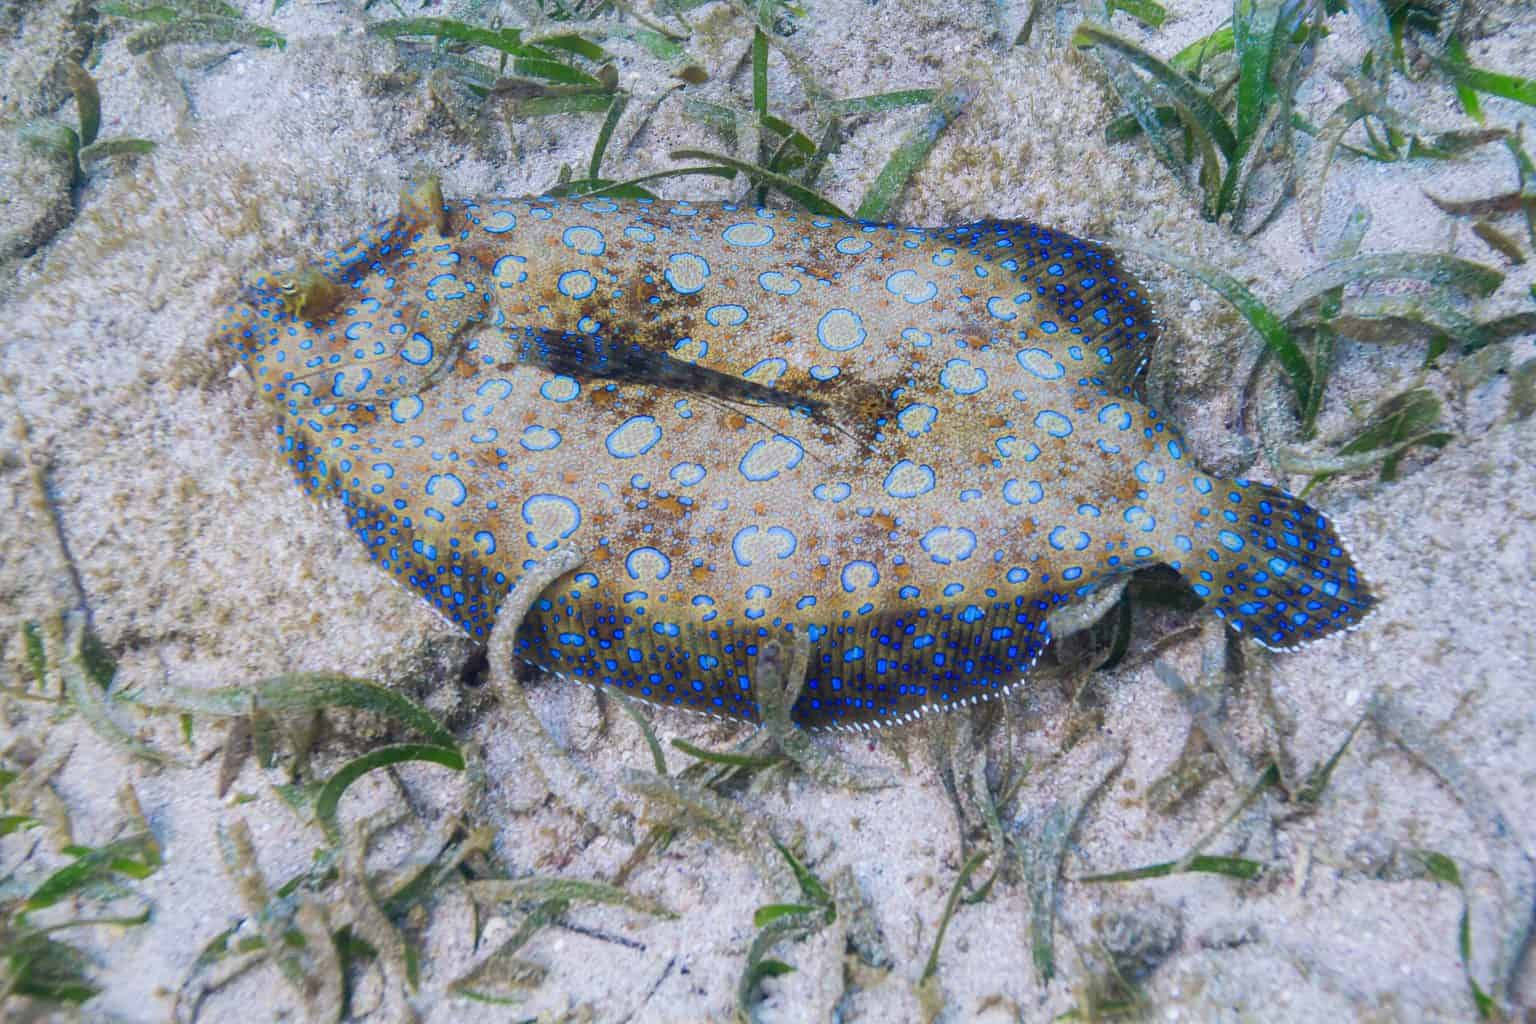 Bothus lunatus on the bottom of a sandy reef with grass algea. What is the best time to catch flounder?